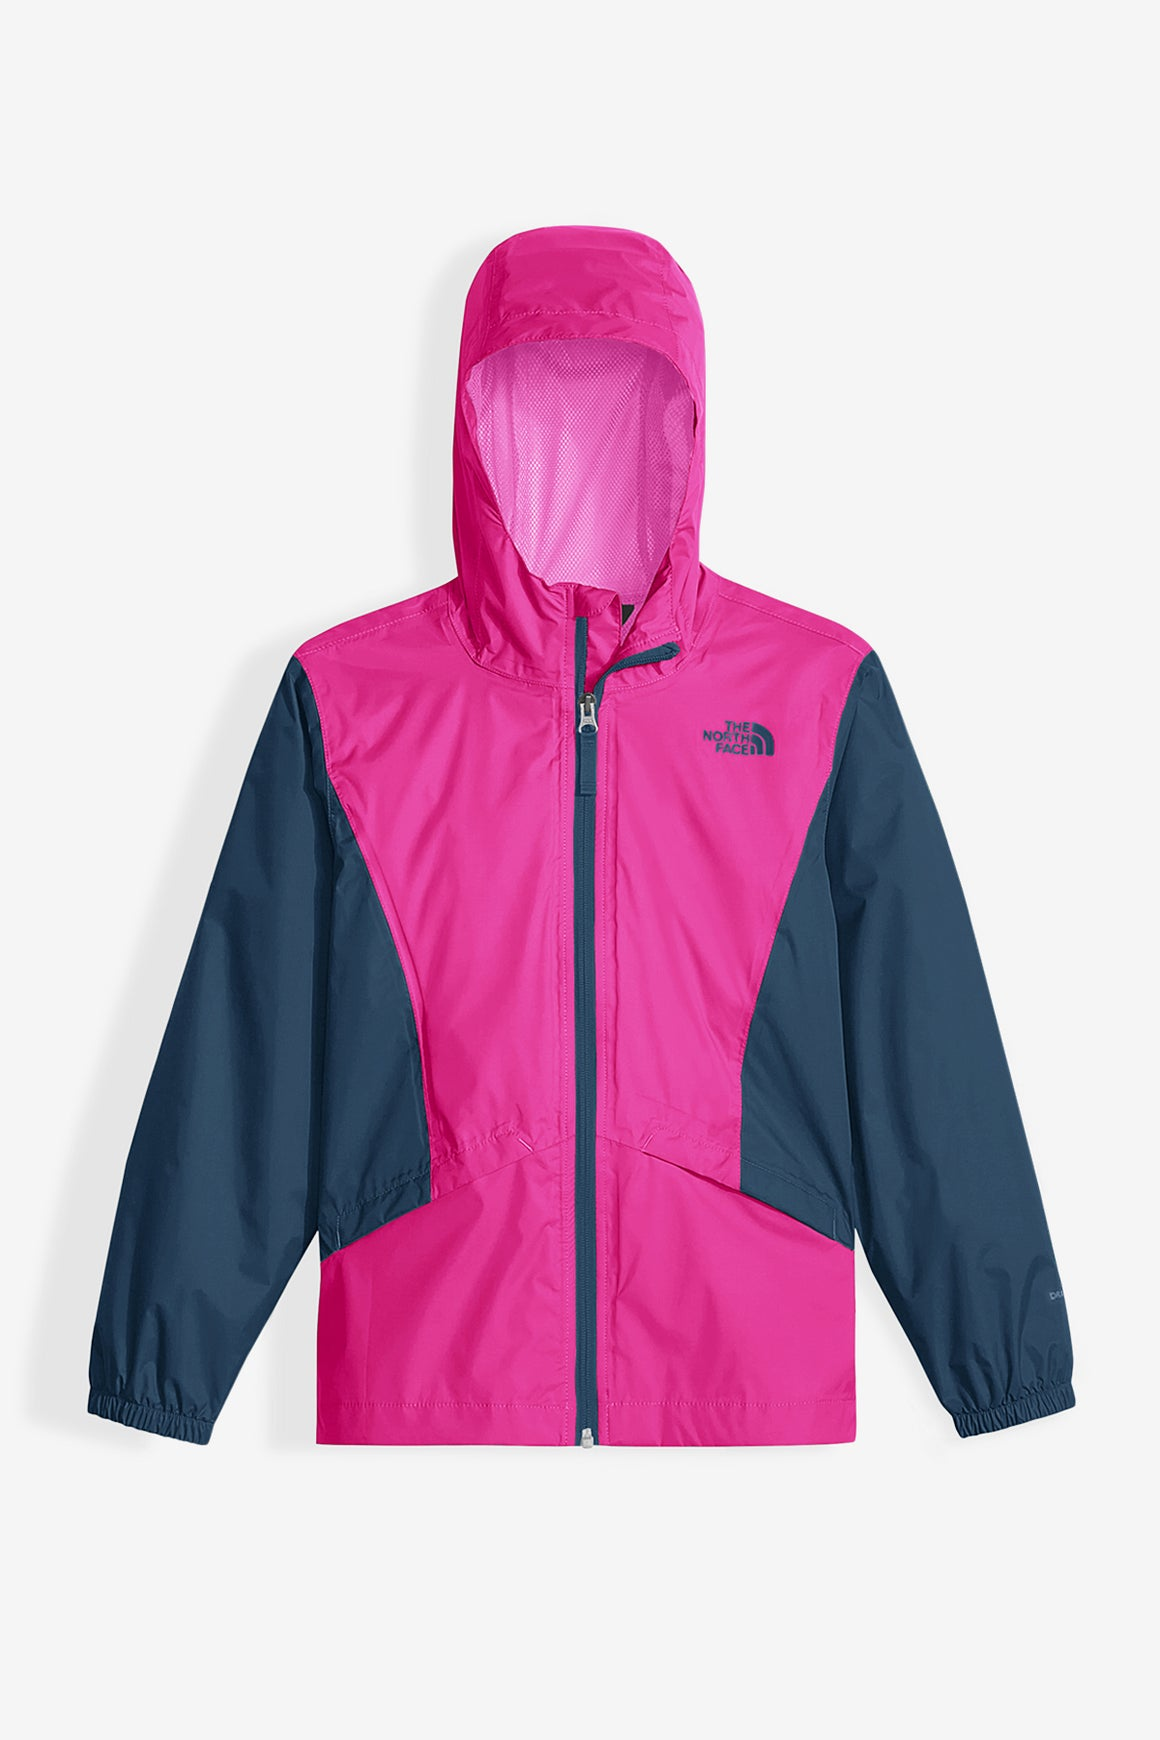 The North Face Girls' Zipline Rain Jacket - Petticoat Pink